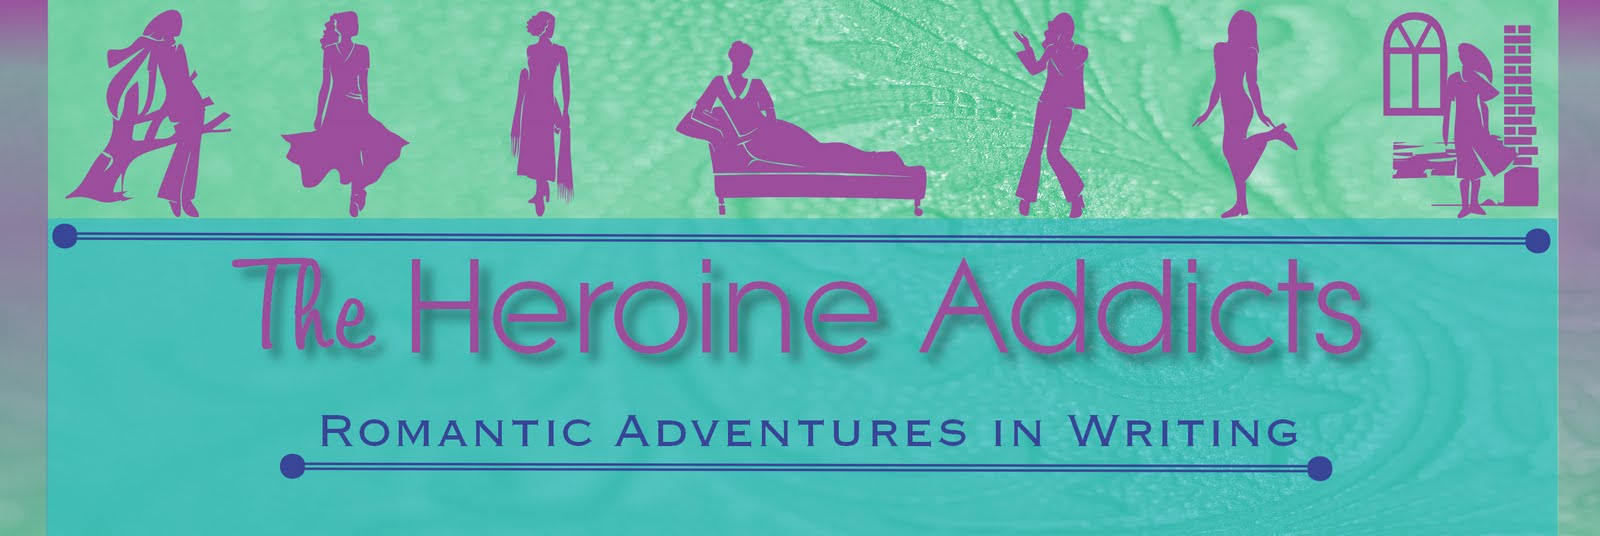 The Heroine Addicts